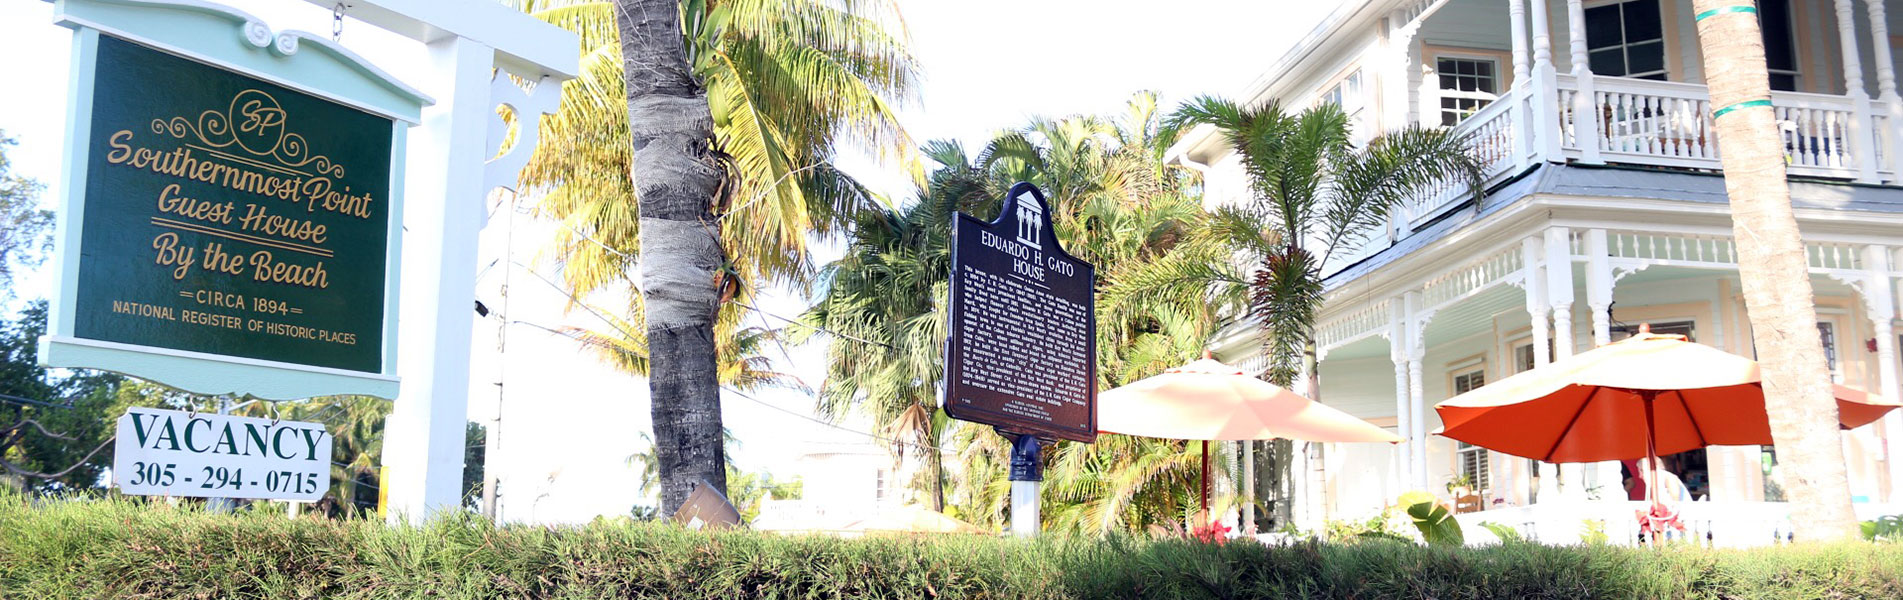 Welcome to the Southernmost Point Guest House